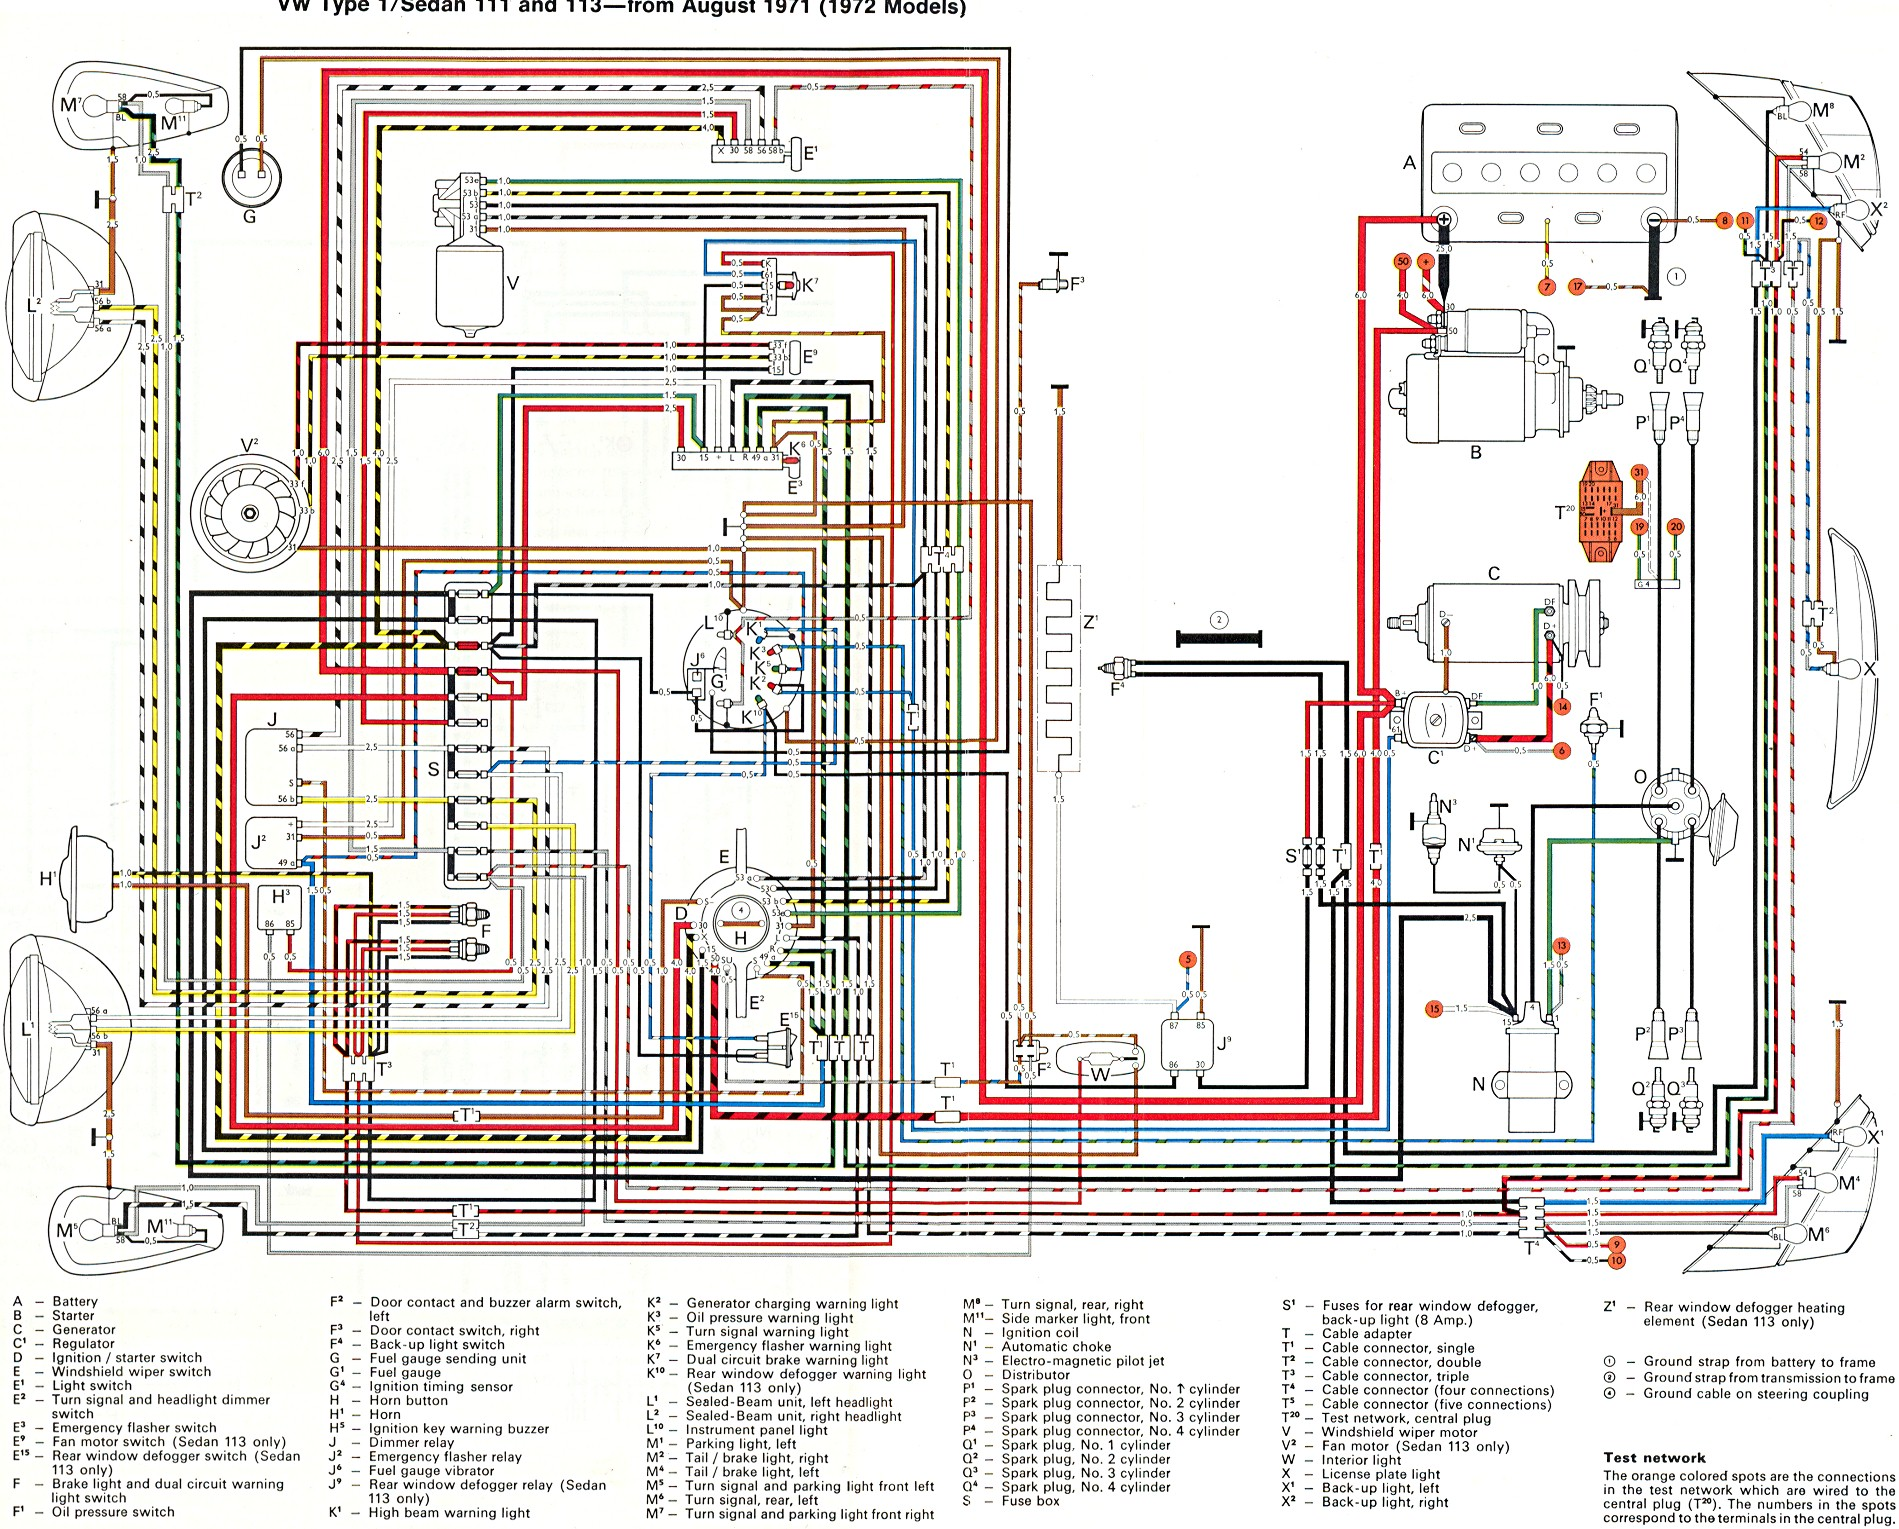 TheSamba.com :: Beetle - Late Model/Super - 1968-up - View topic - Fuse  diagram wrong?The Samba